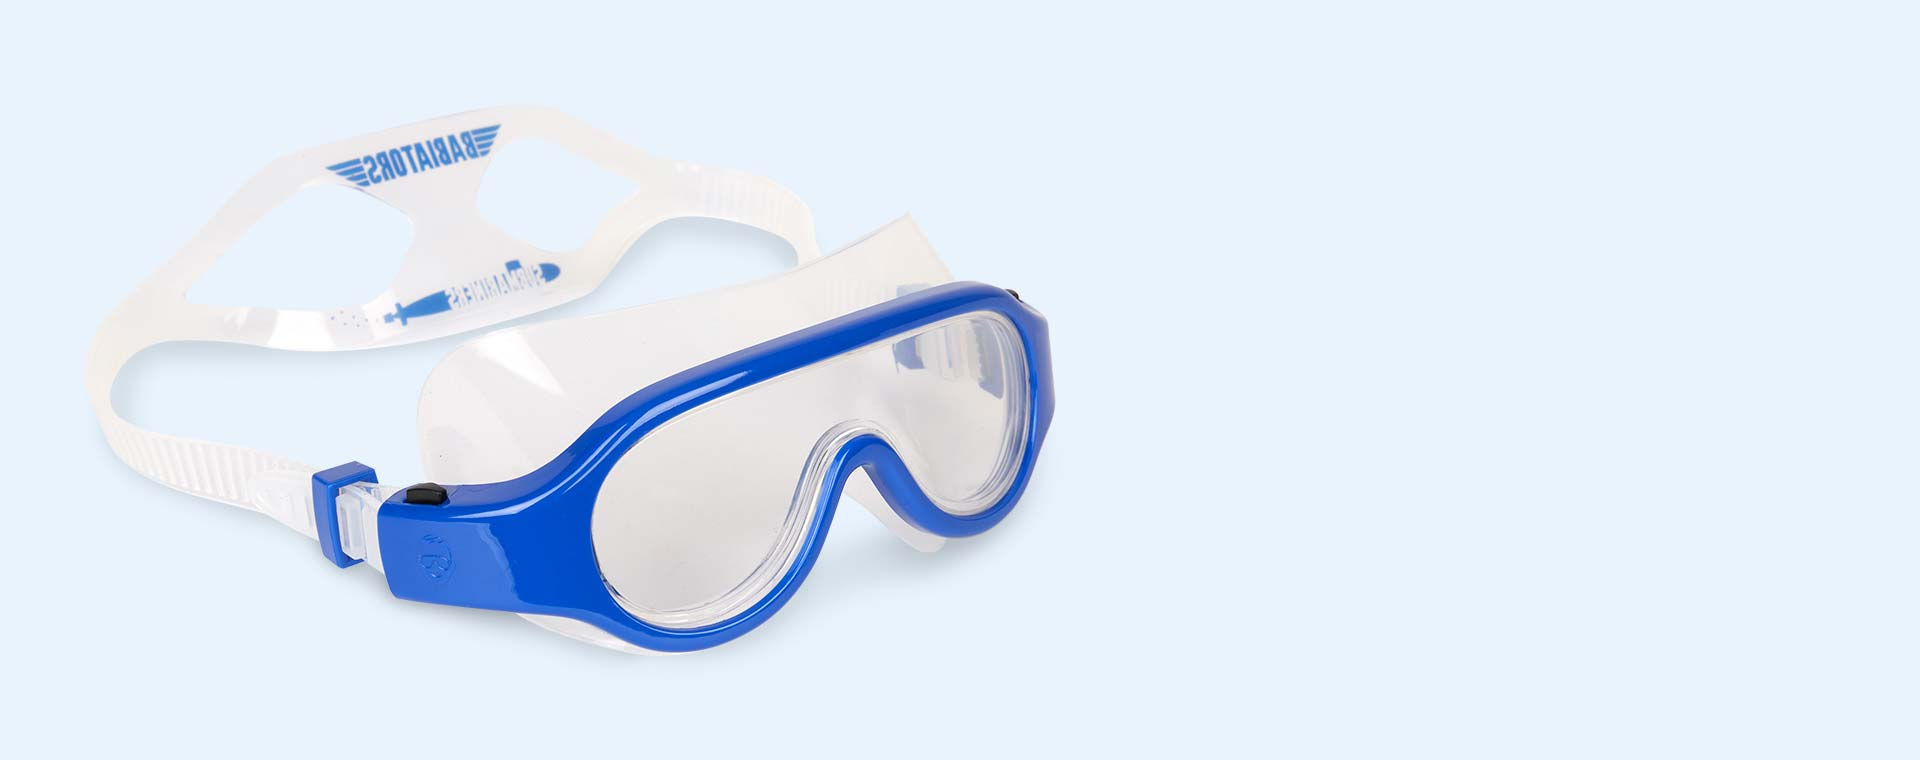 Blue Babiators Submariners Swim Goggles